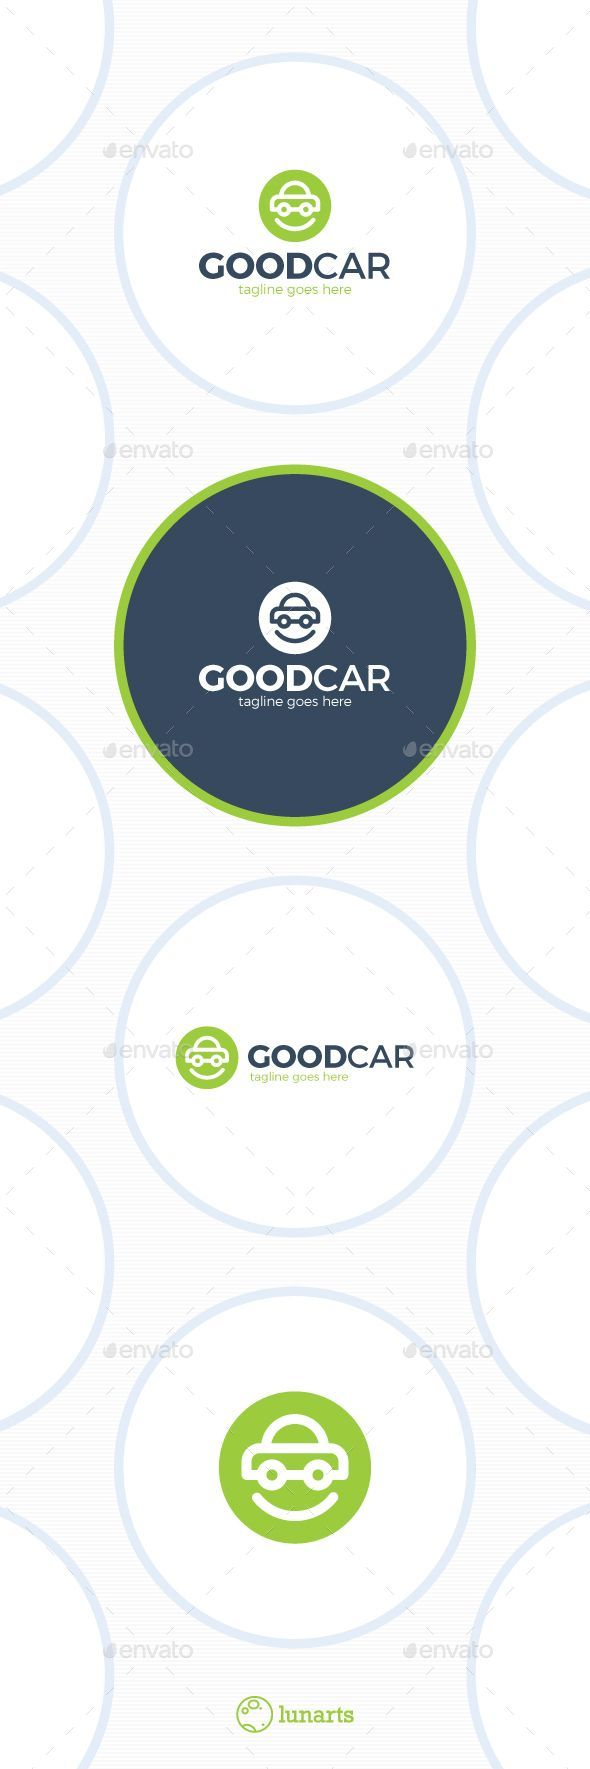 Smile Car Logo - Good Auto. Template Vector EPS, AI. Download here: http://graphicriver.net/item/smile-car-logo-good-auto/13346138?ref=ksioks